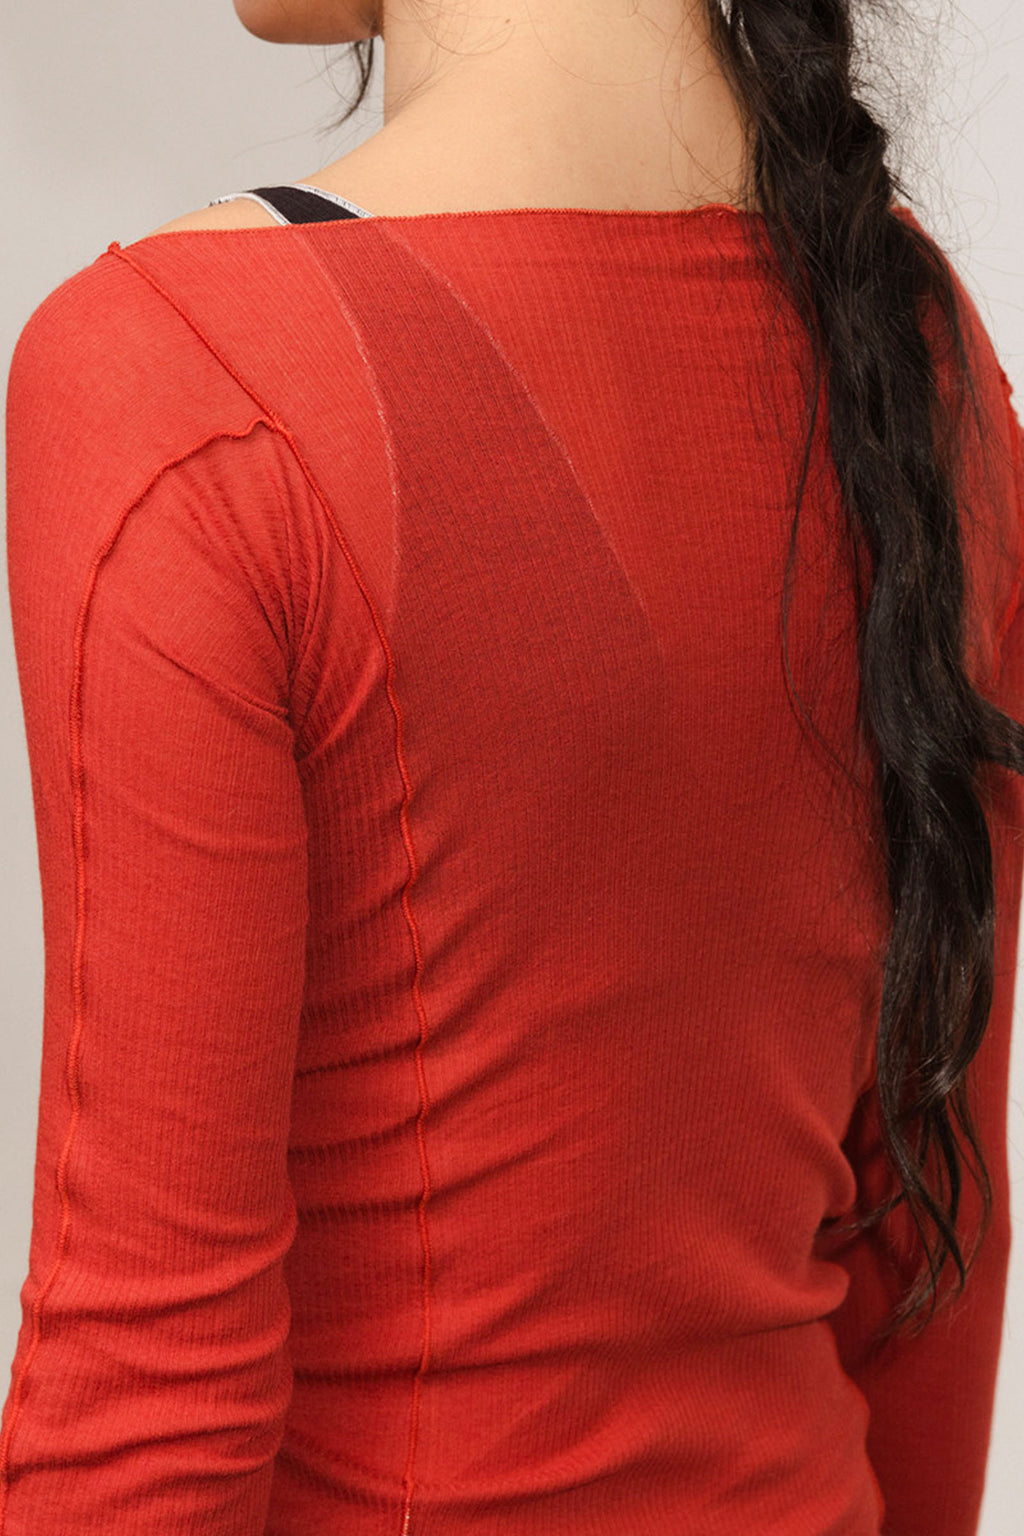 Base Range Omato Long Sleeve Cotton Rib in Cherry Red